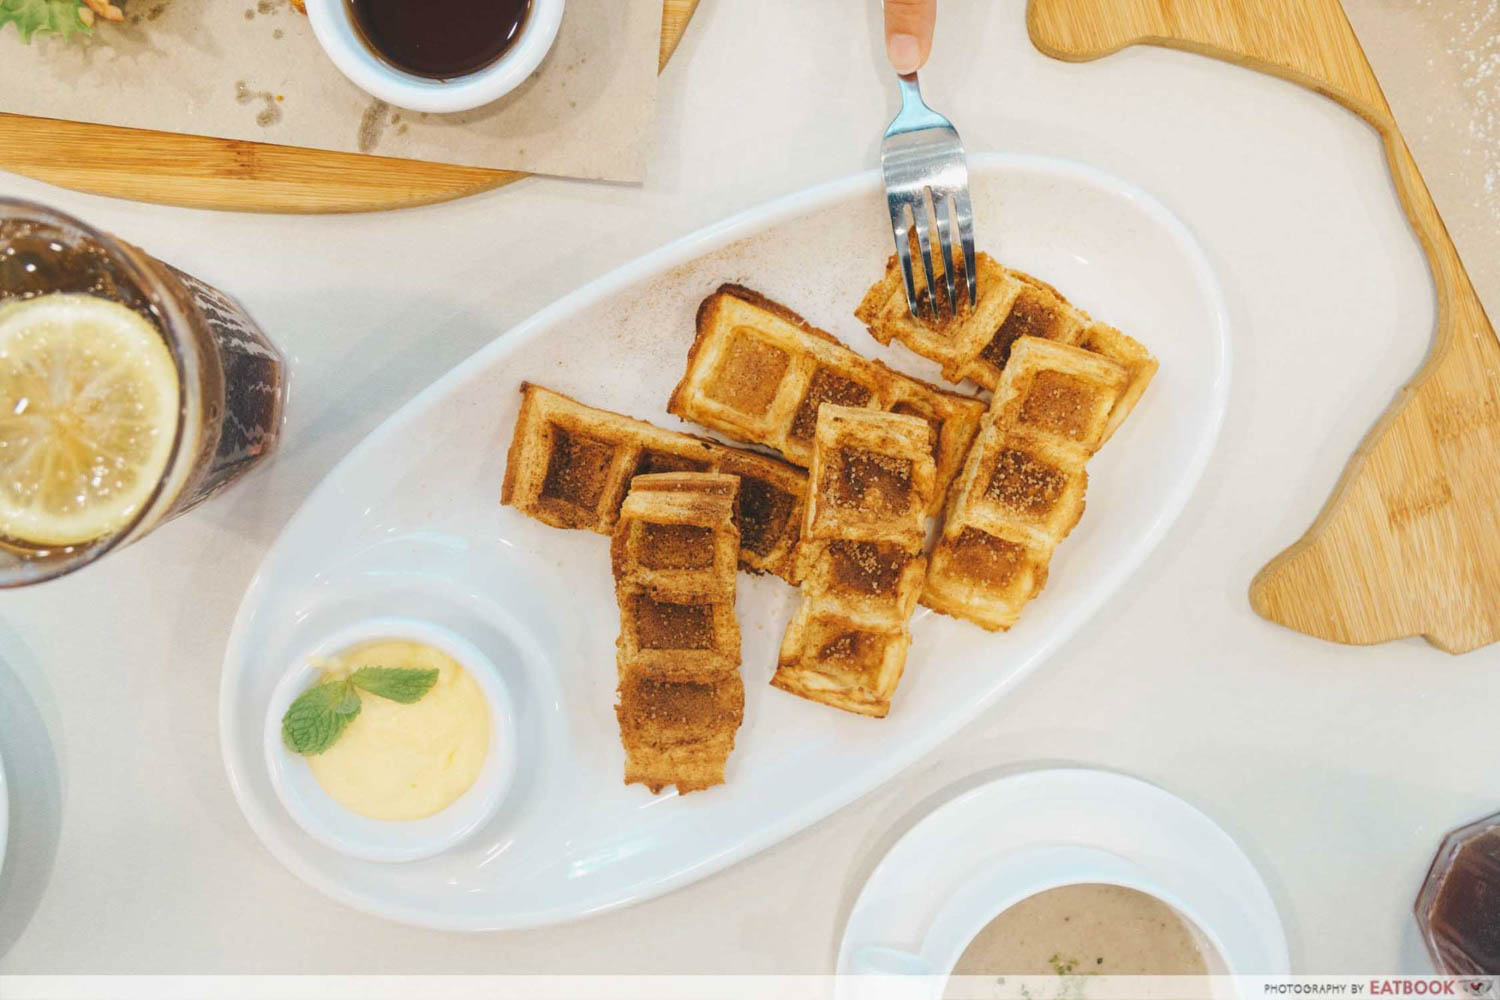 Cluck Cluck - Waffle churros